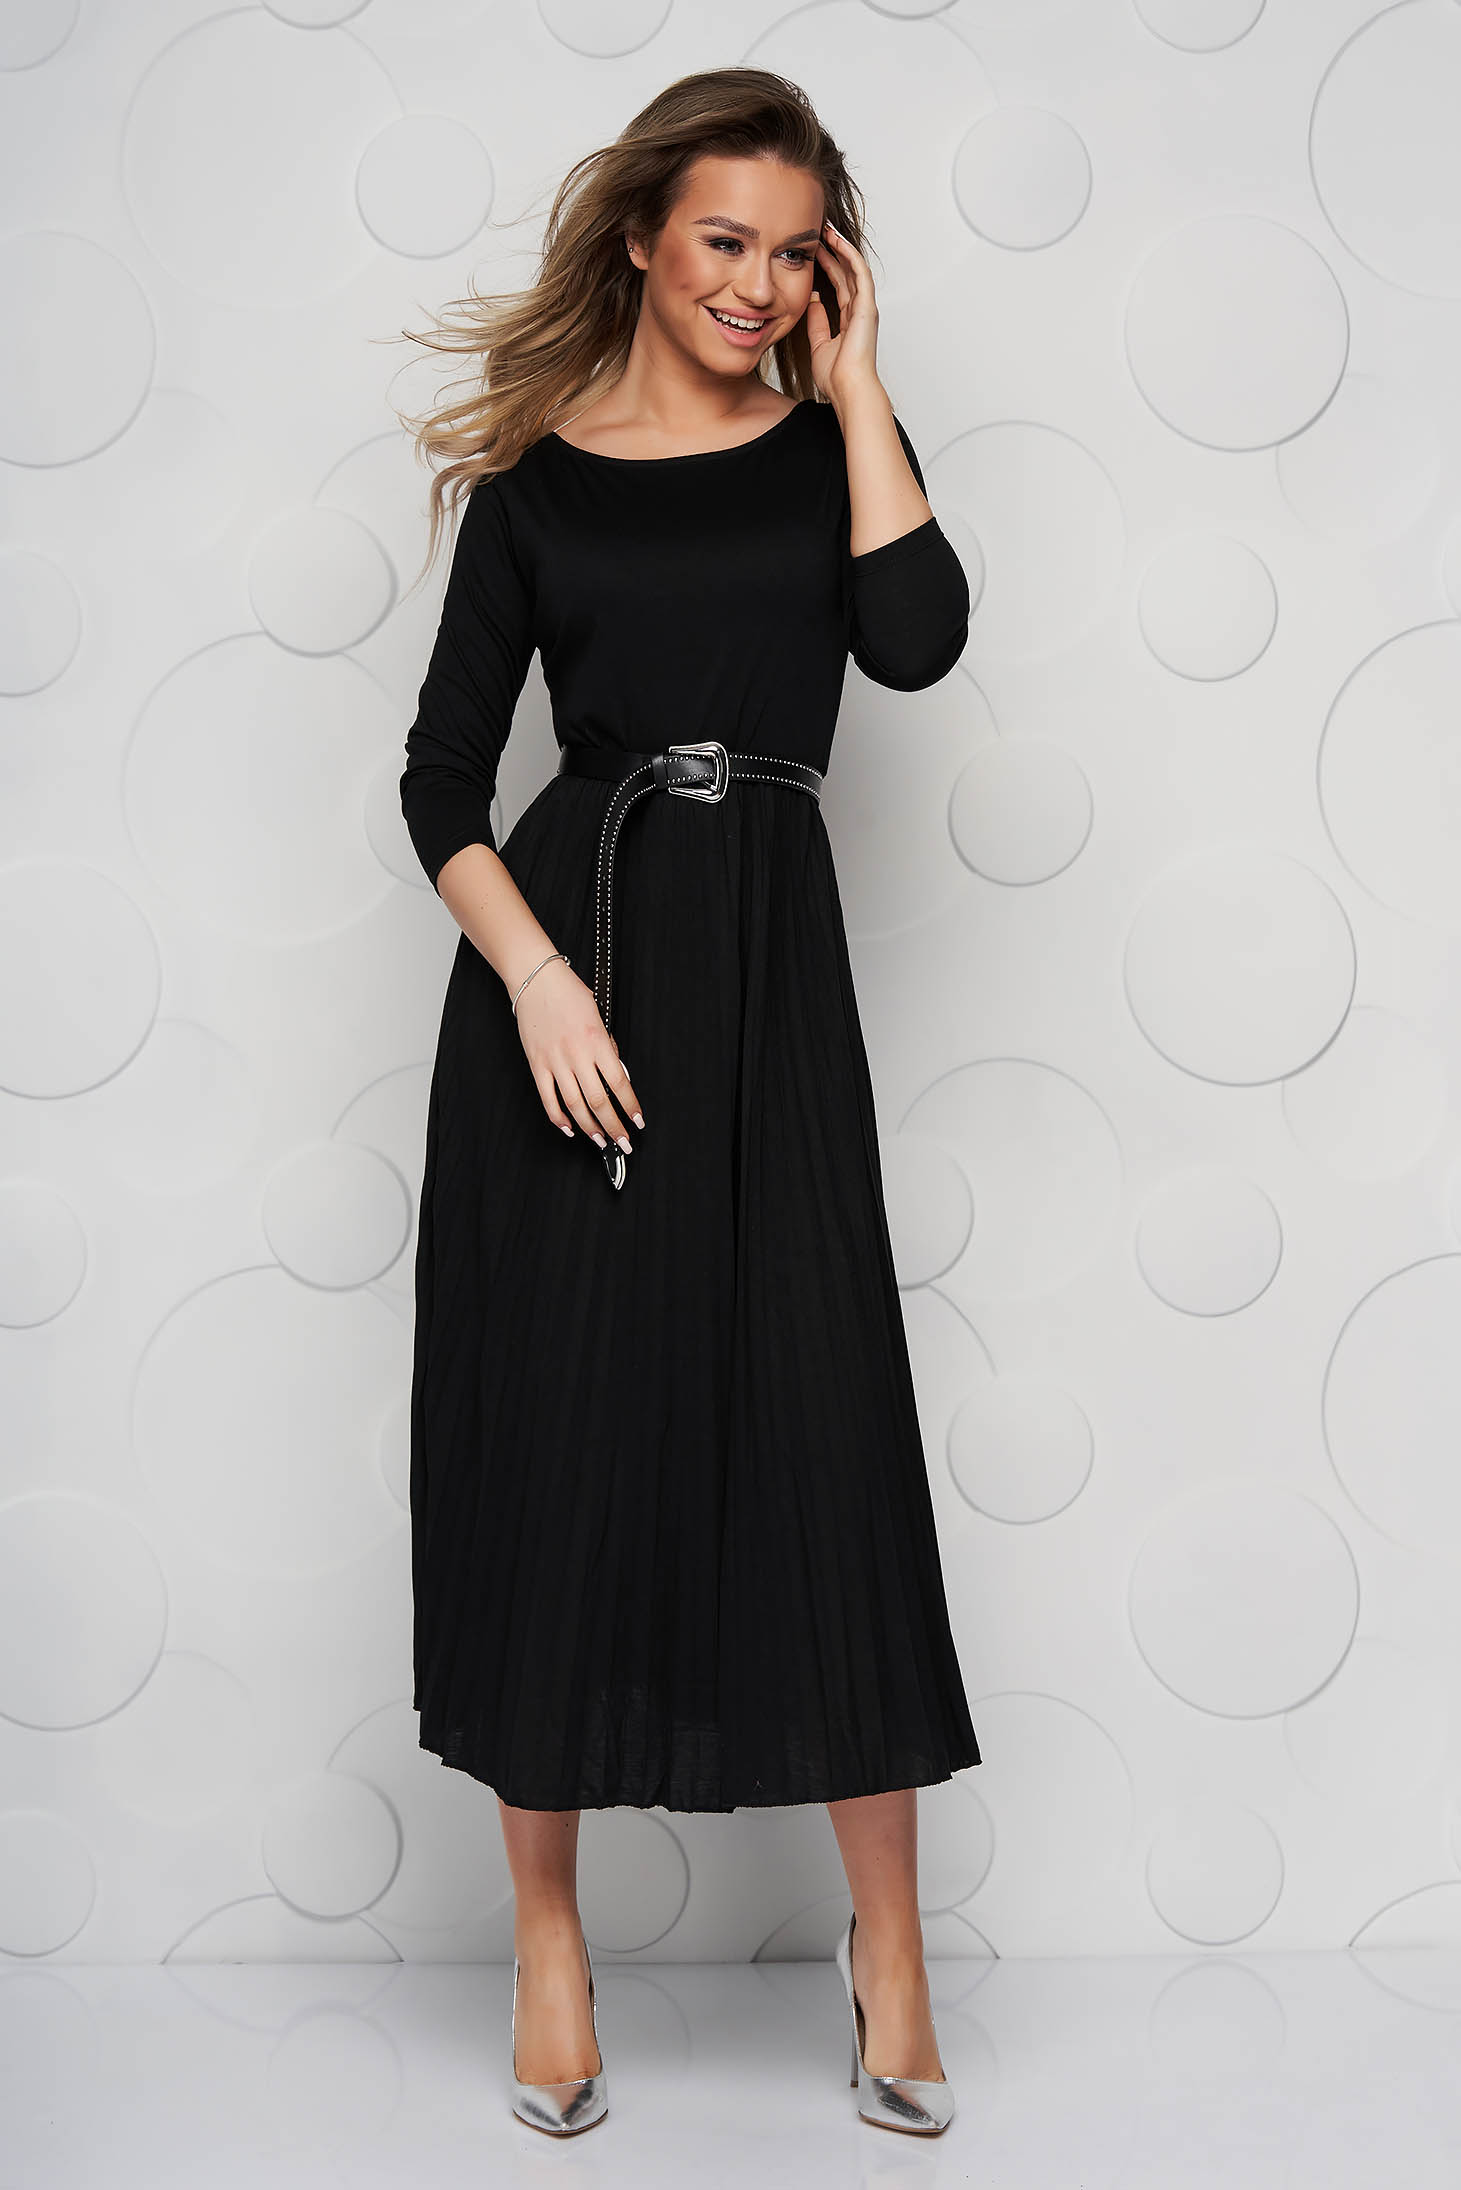 Black dress midi cloche folded up with 3/4 sleeves